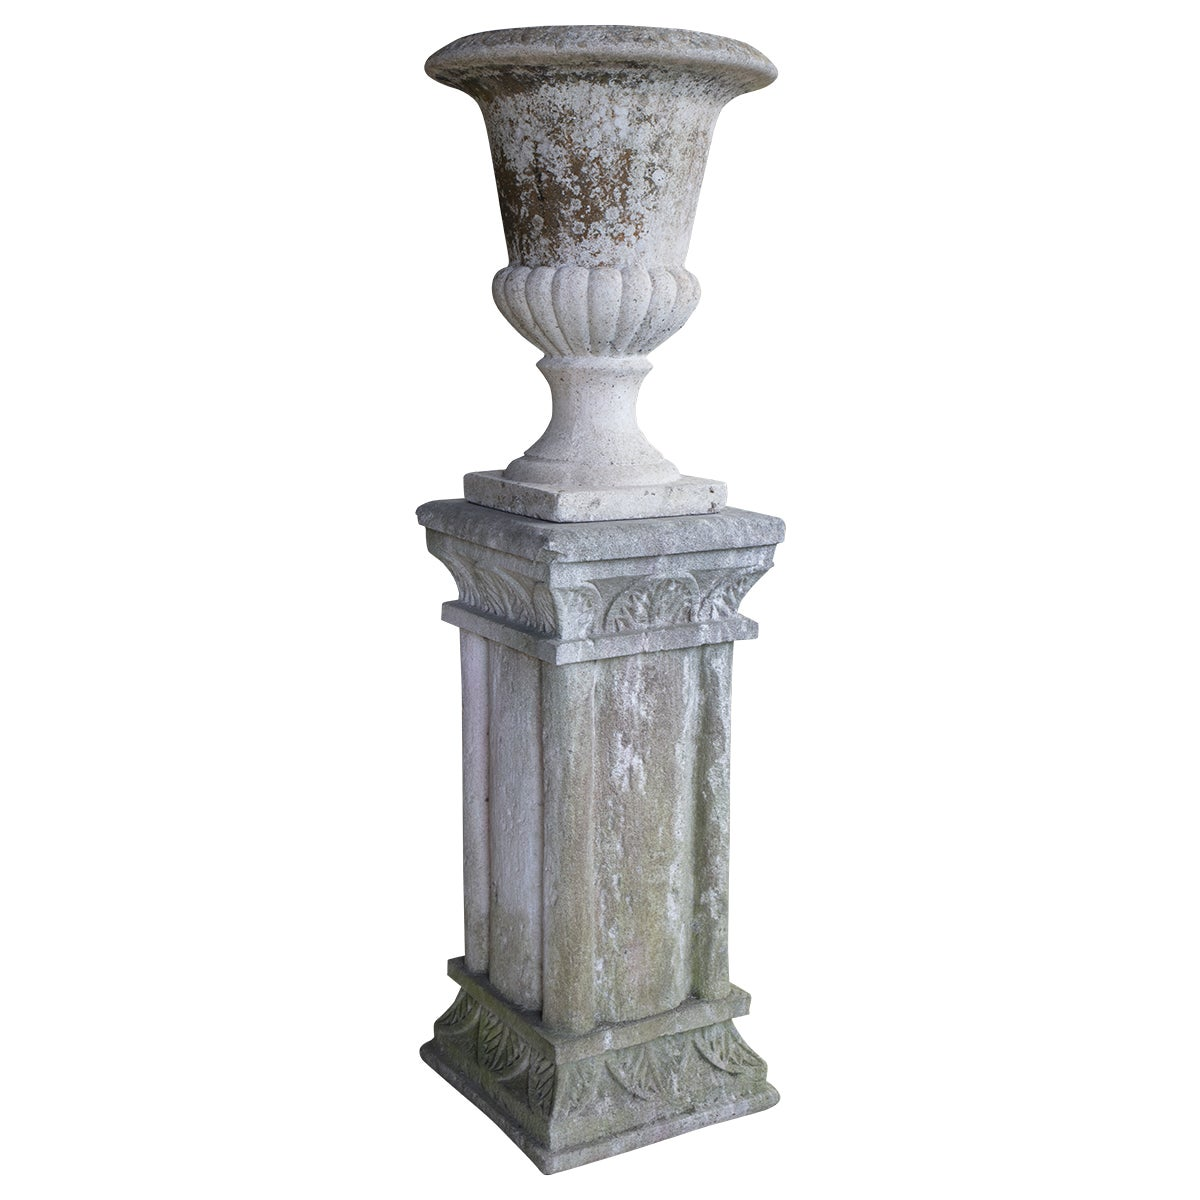 Vintage French Cast Stone Urn on Pedestal